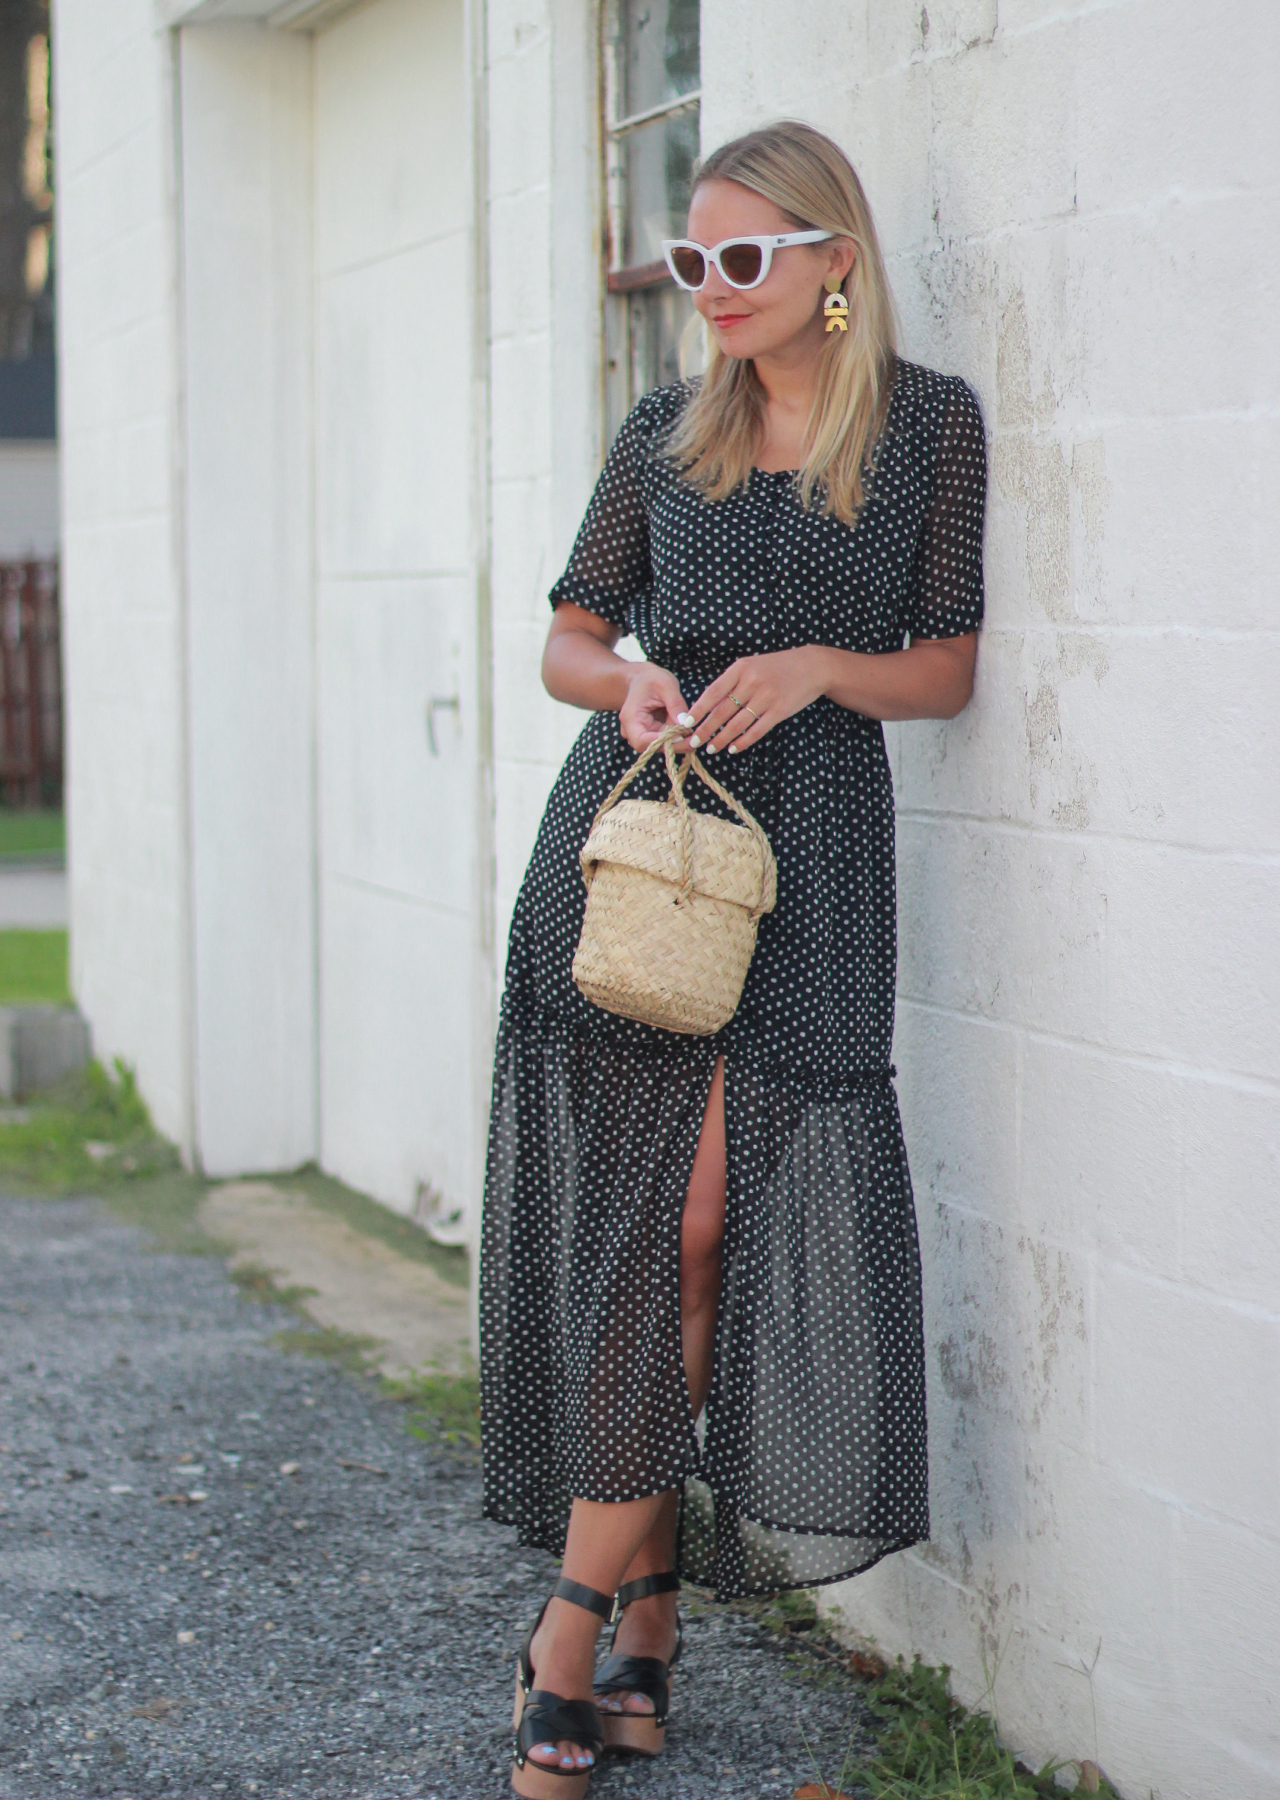 The Steele Maiden: Polka Dot Maxi Dress